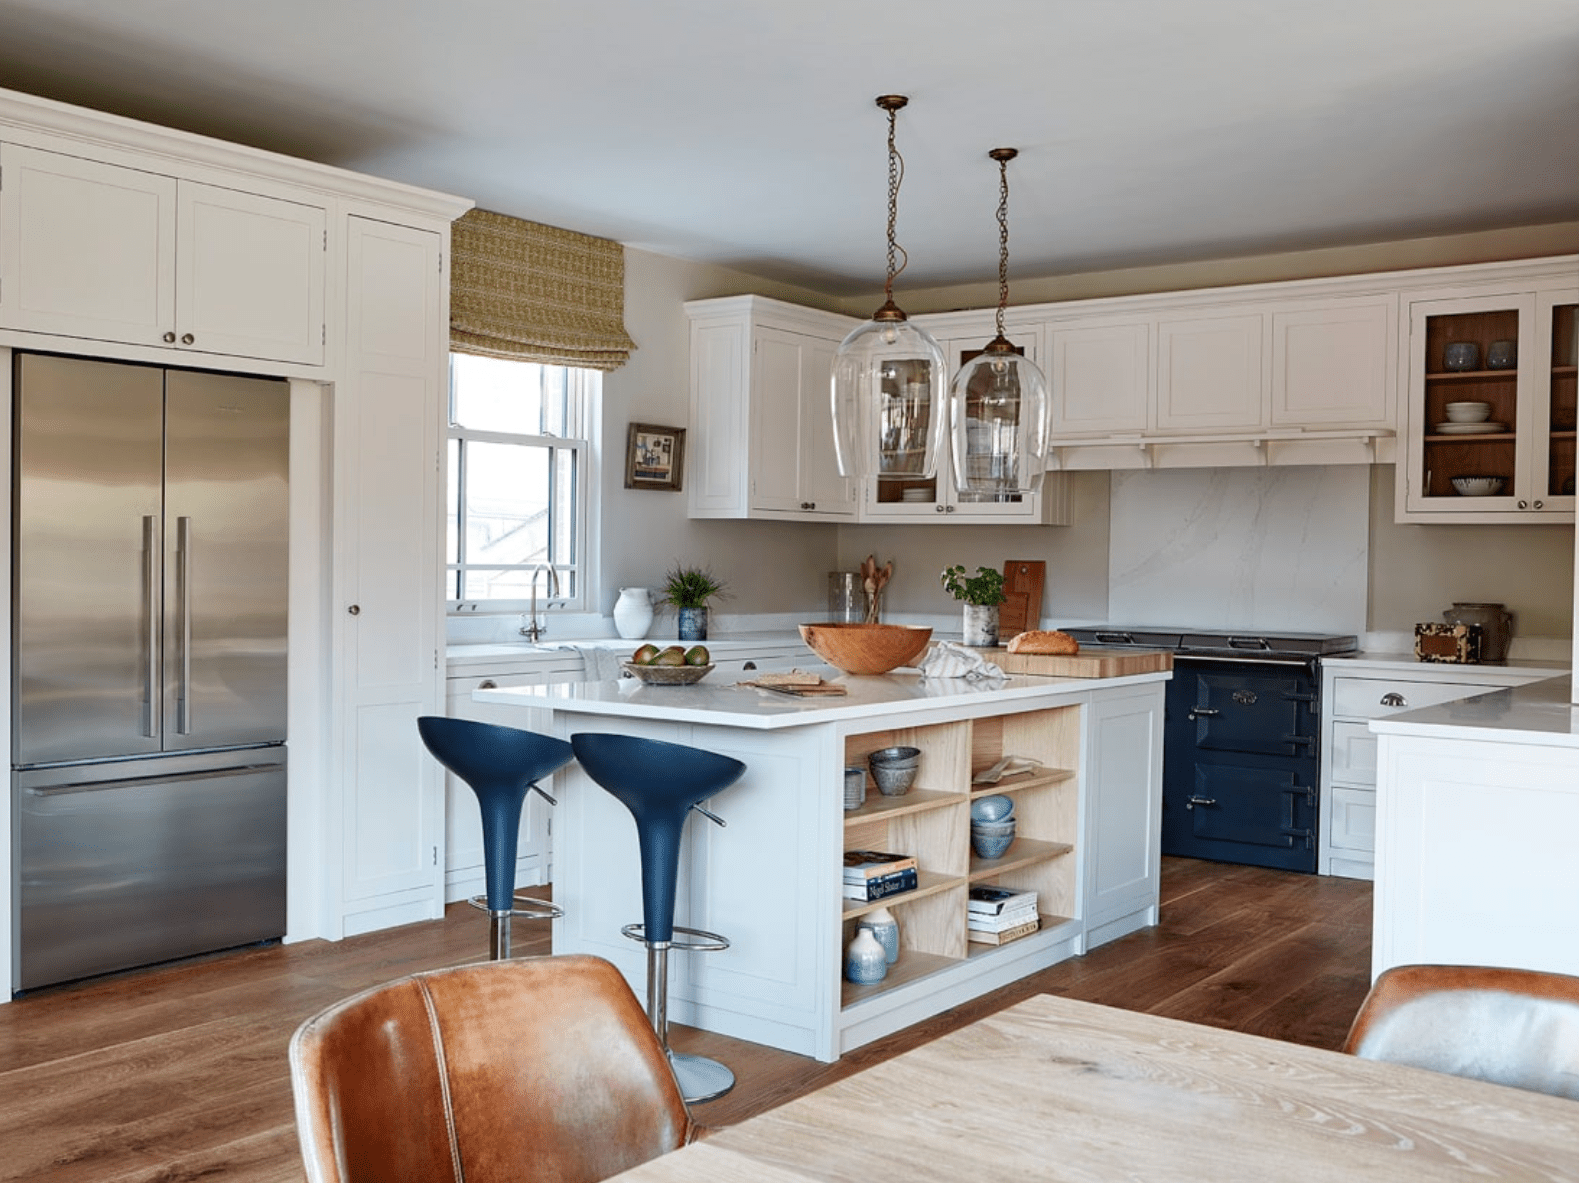 White kitchen with cobalt blue stove.